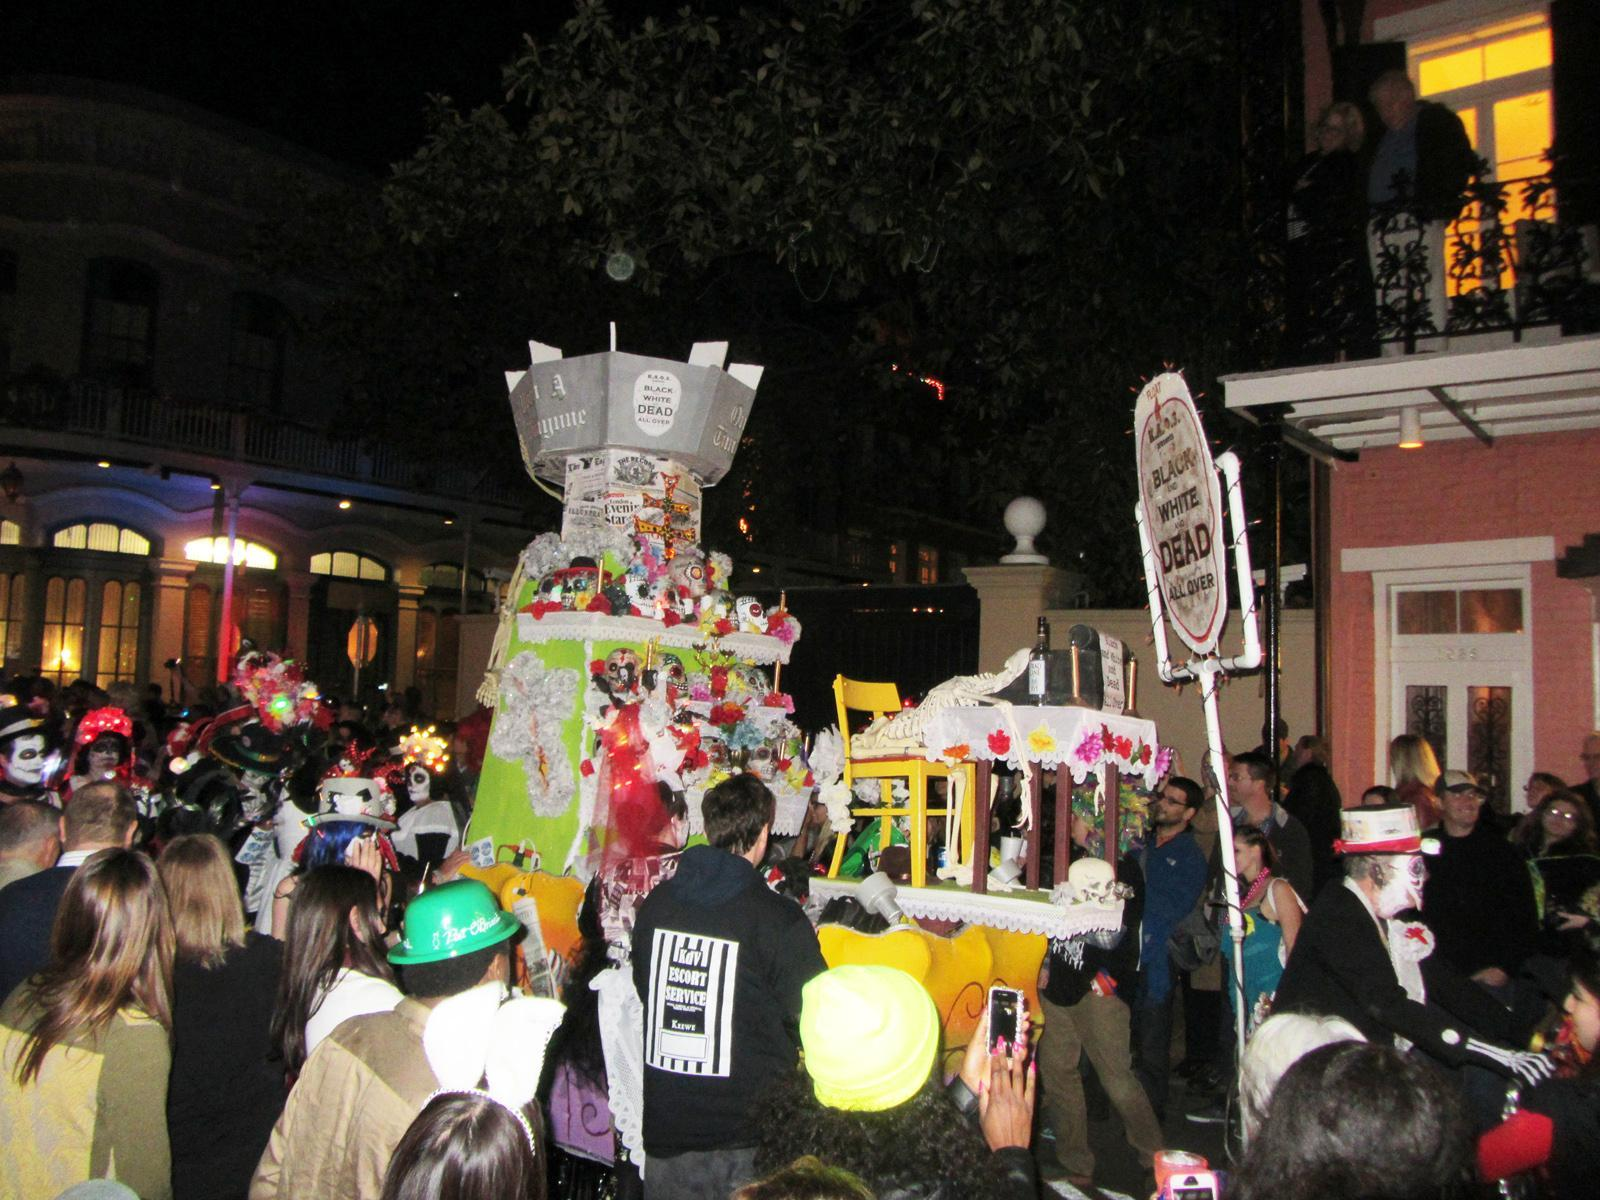 "Parade-goers surround a Krewe du Vieux float which criticizes the newspaper's recent decision to publish thrice weekly as opposed to daily. The float refers to the newspaper as ""The Times Prickayune"" while calling it ""Black and White and Dead All Over."